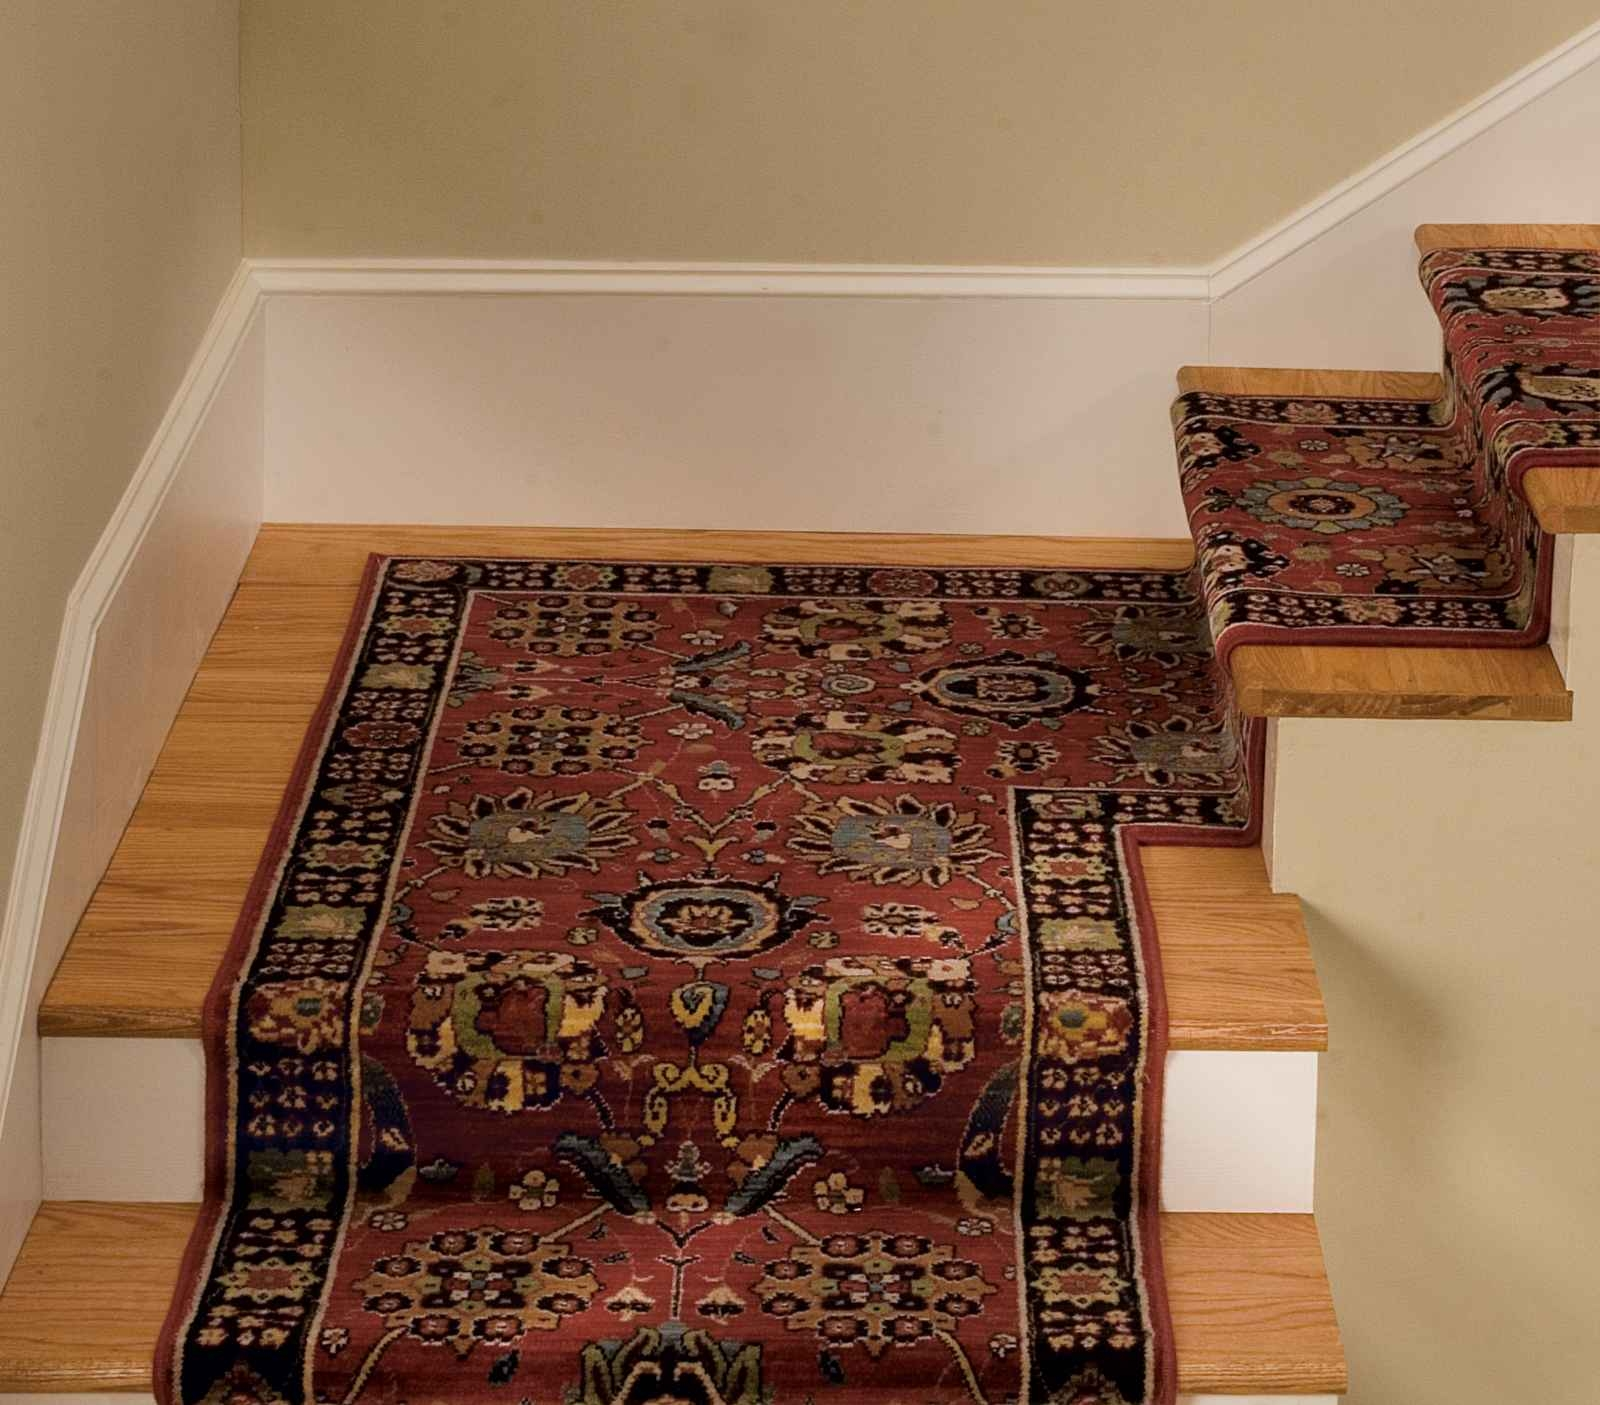 Carpet Stair Runner For Home New Home Pinterest Stair Treads For Stair Tread Rugs For Carpet (Image 3 of 15)